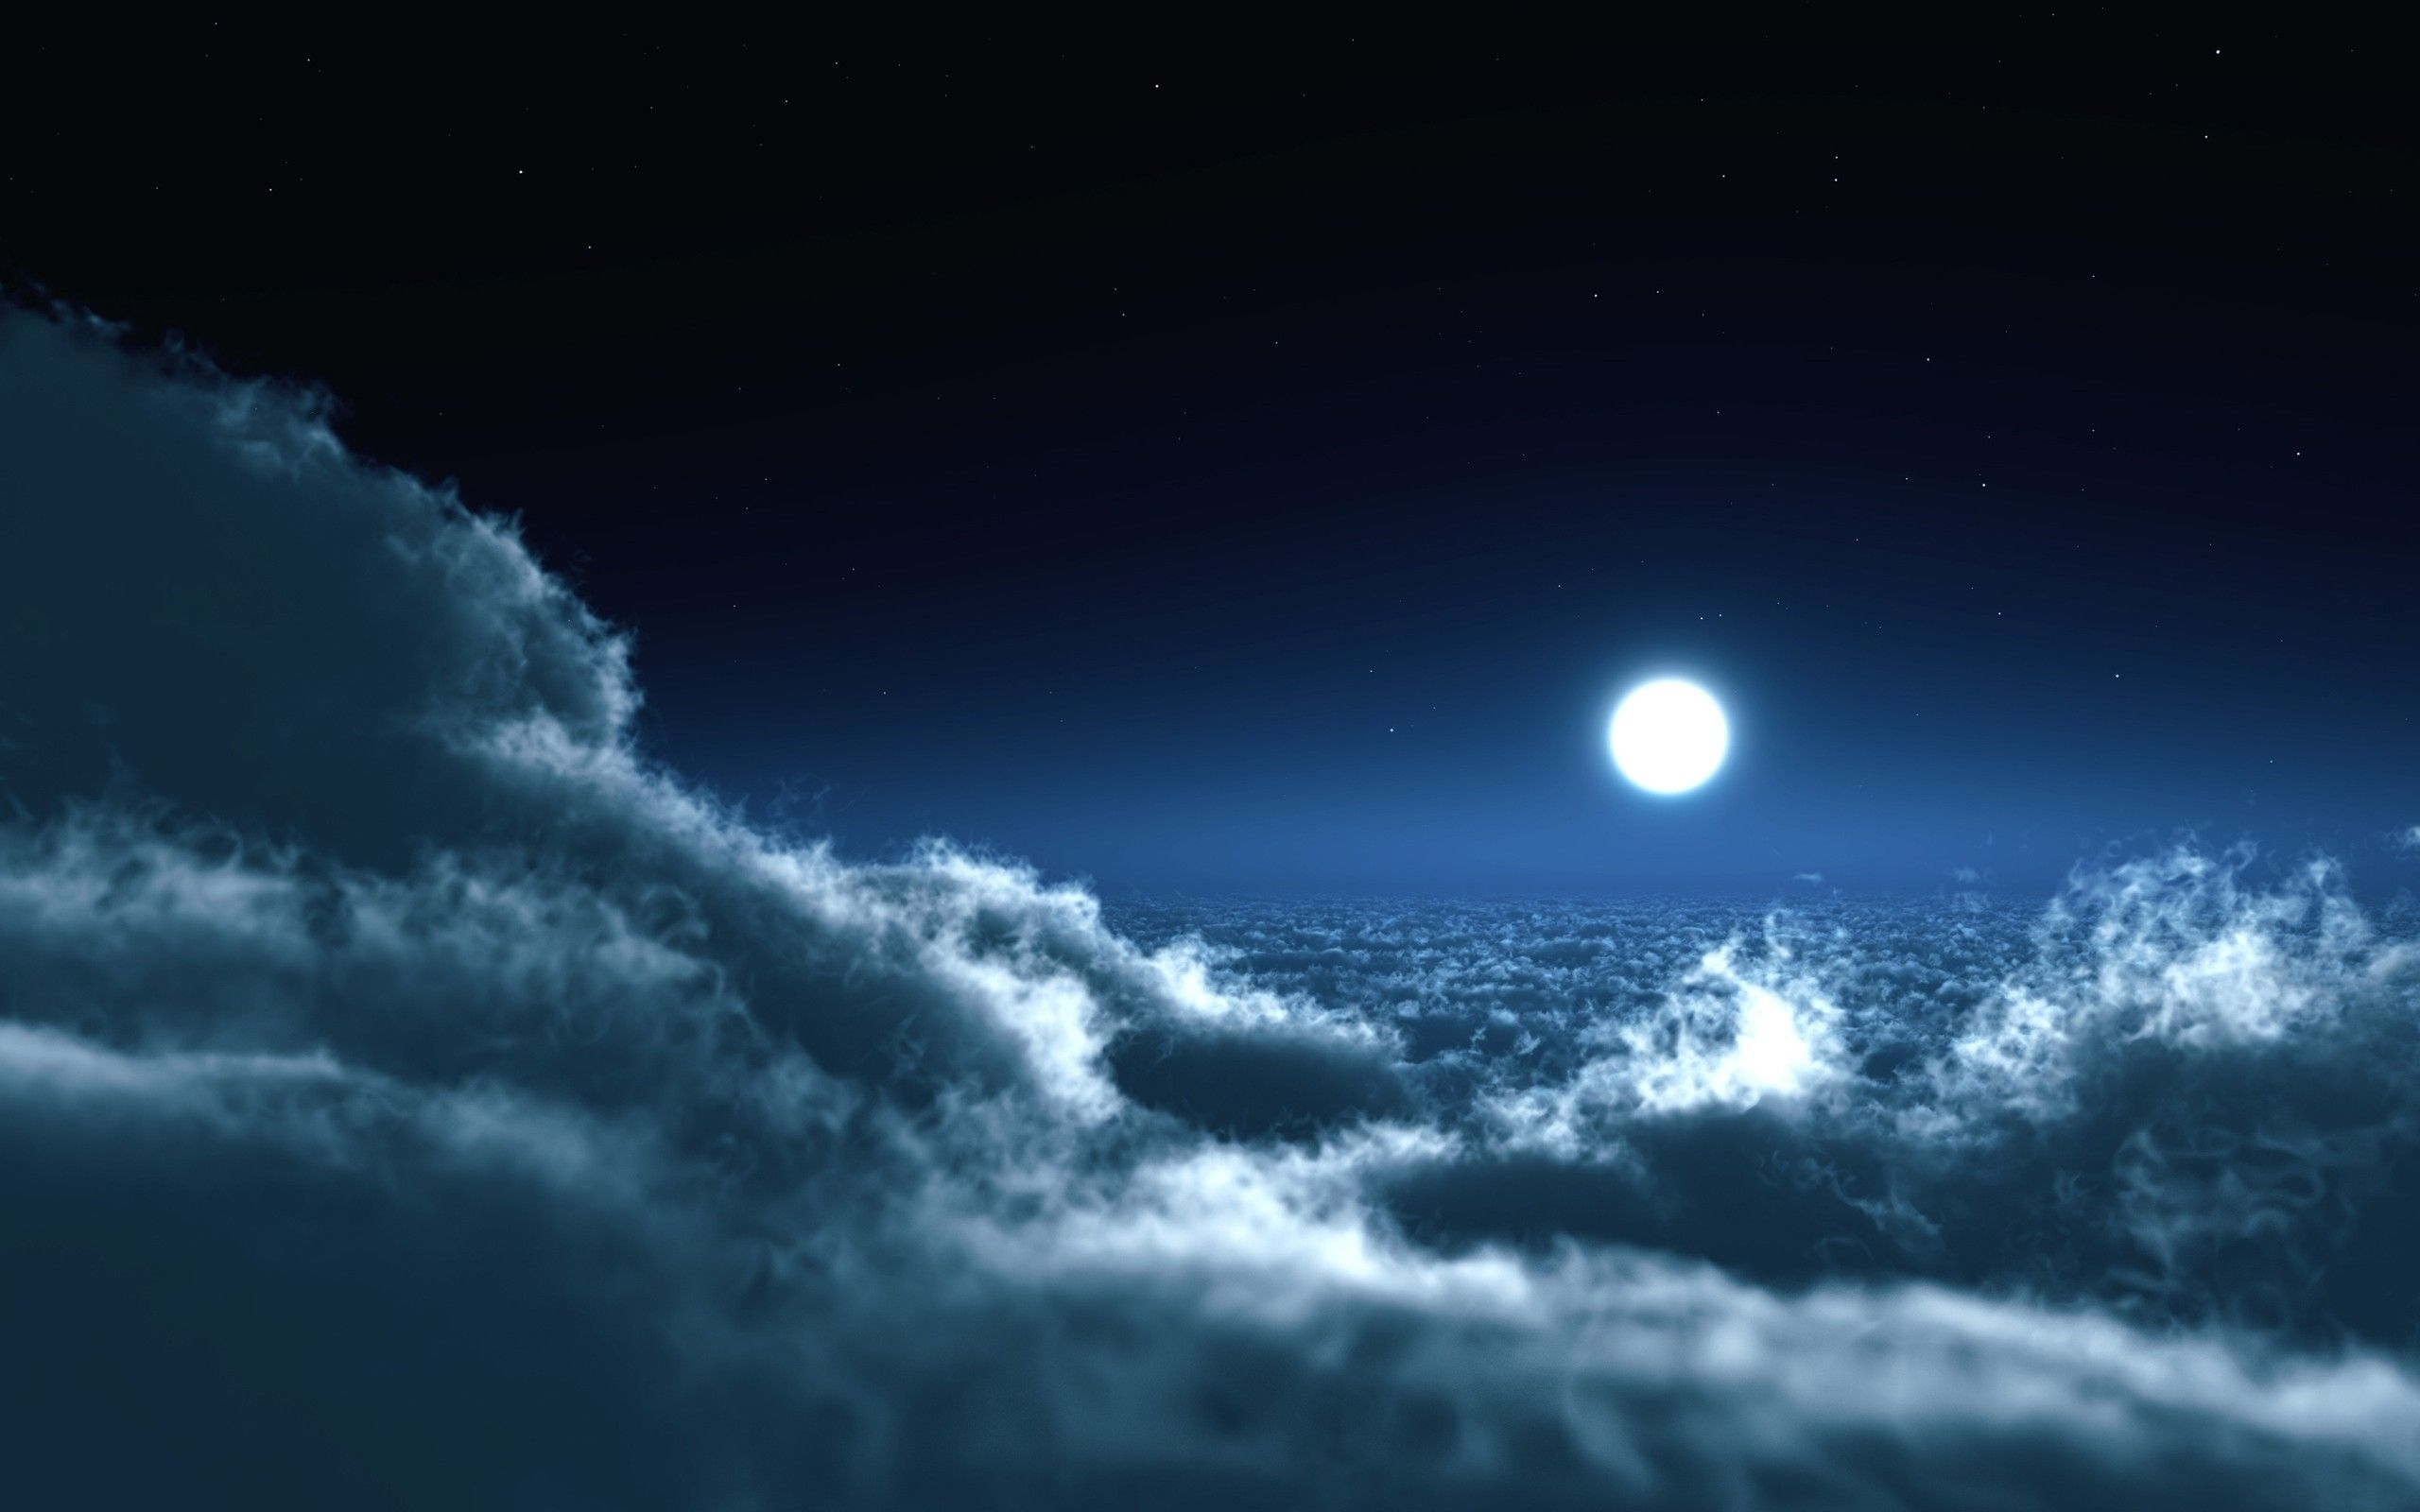 New Moon Wallpapers Hd Wallpapers Laptop Wallpapers Night Sky Wallpaper Clouds Night Clouds